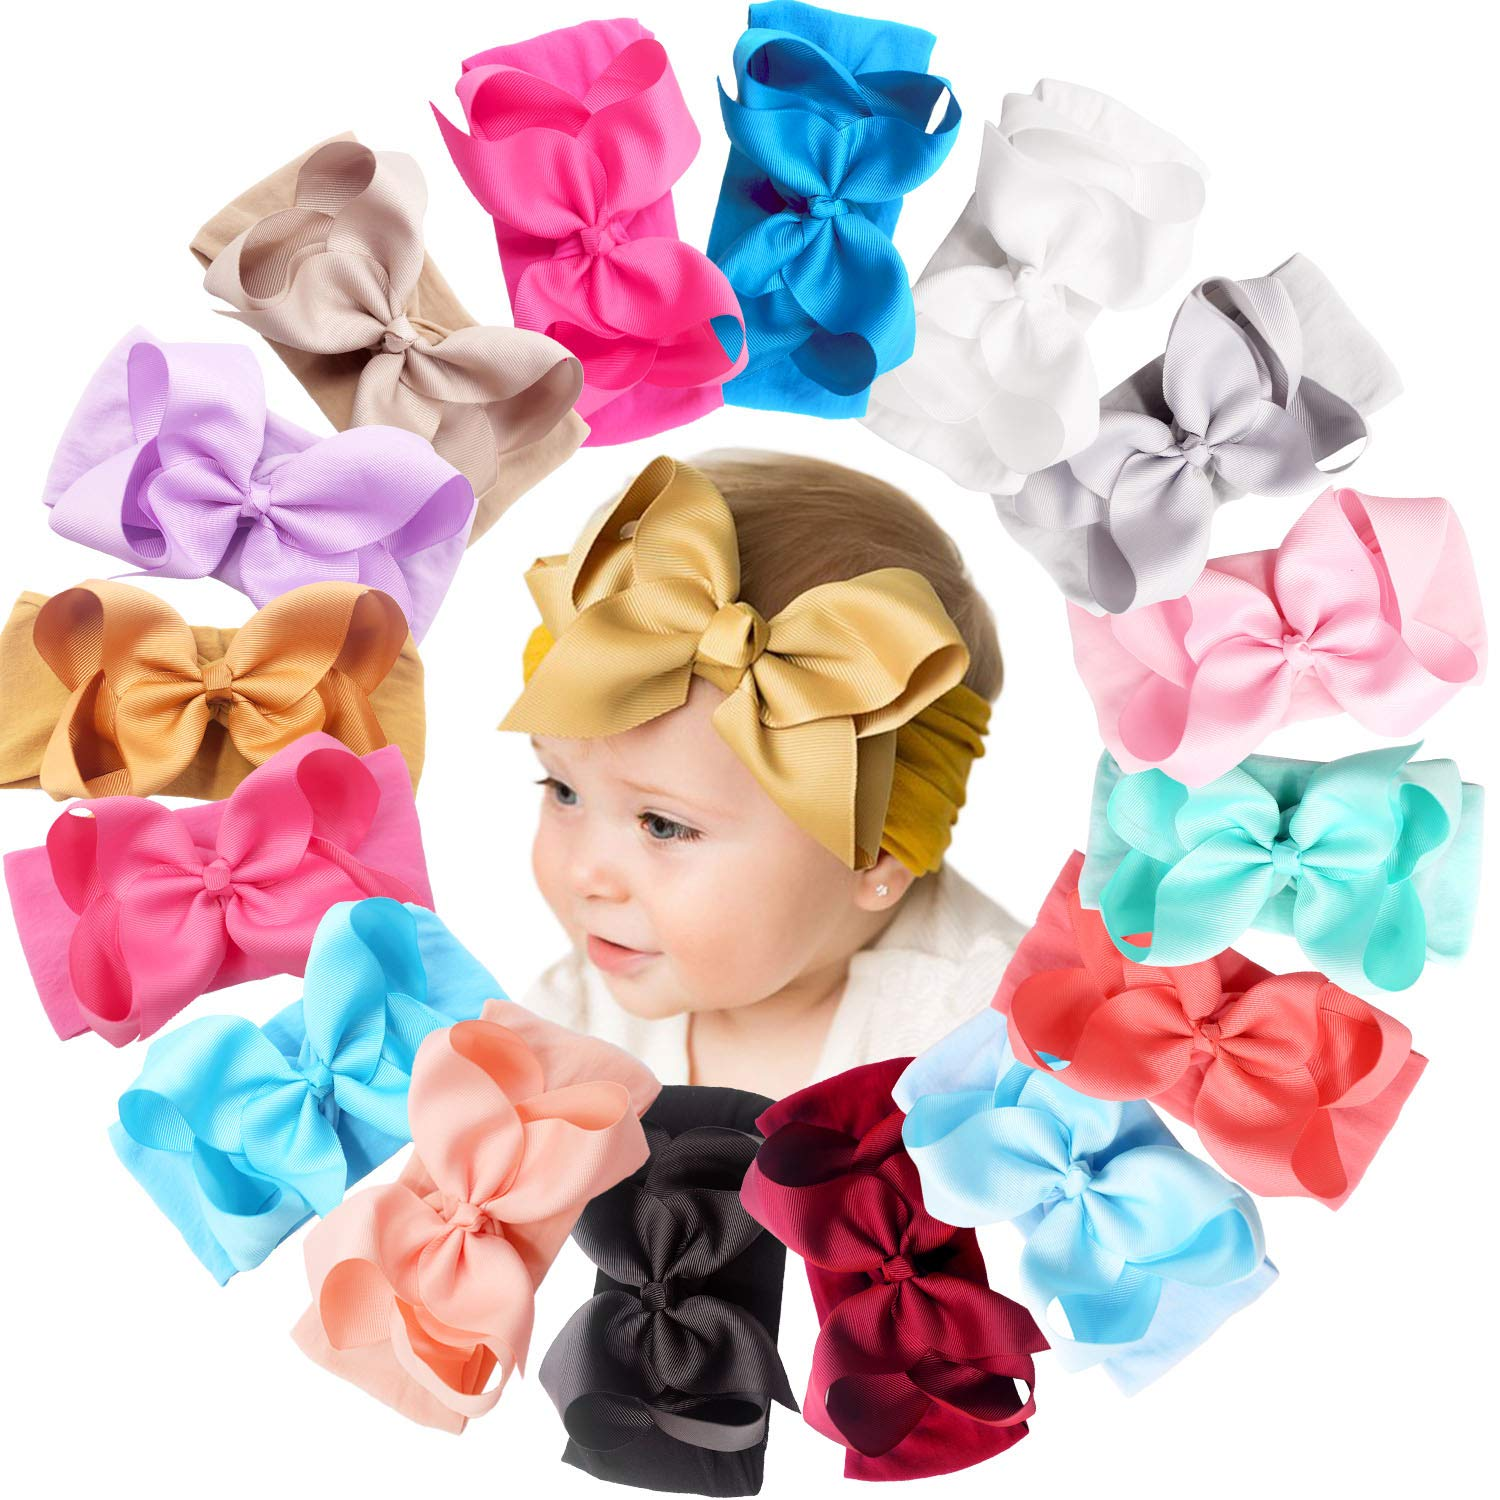 16 Colors Baby Sales for sale Nylon Knotted Headbands Hair Big 6 lowest price inches Girls B